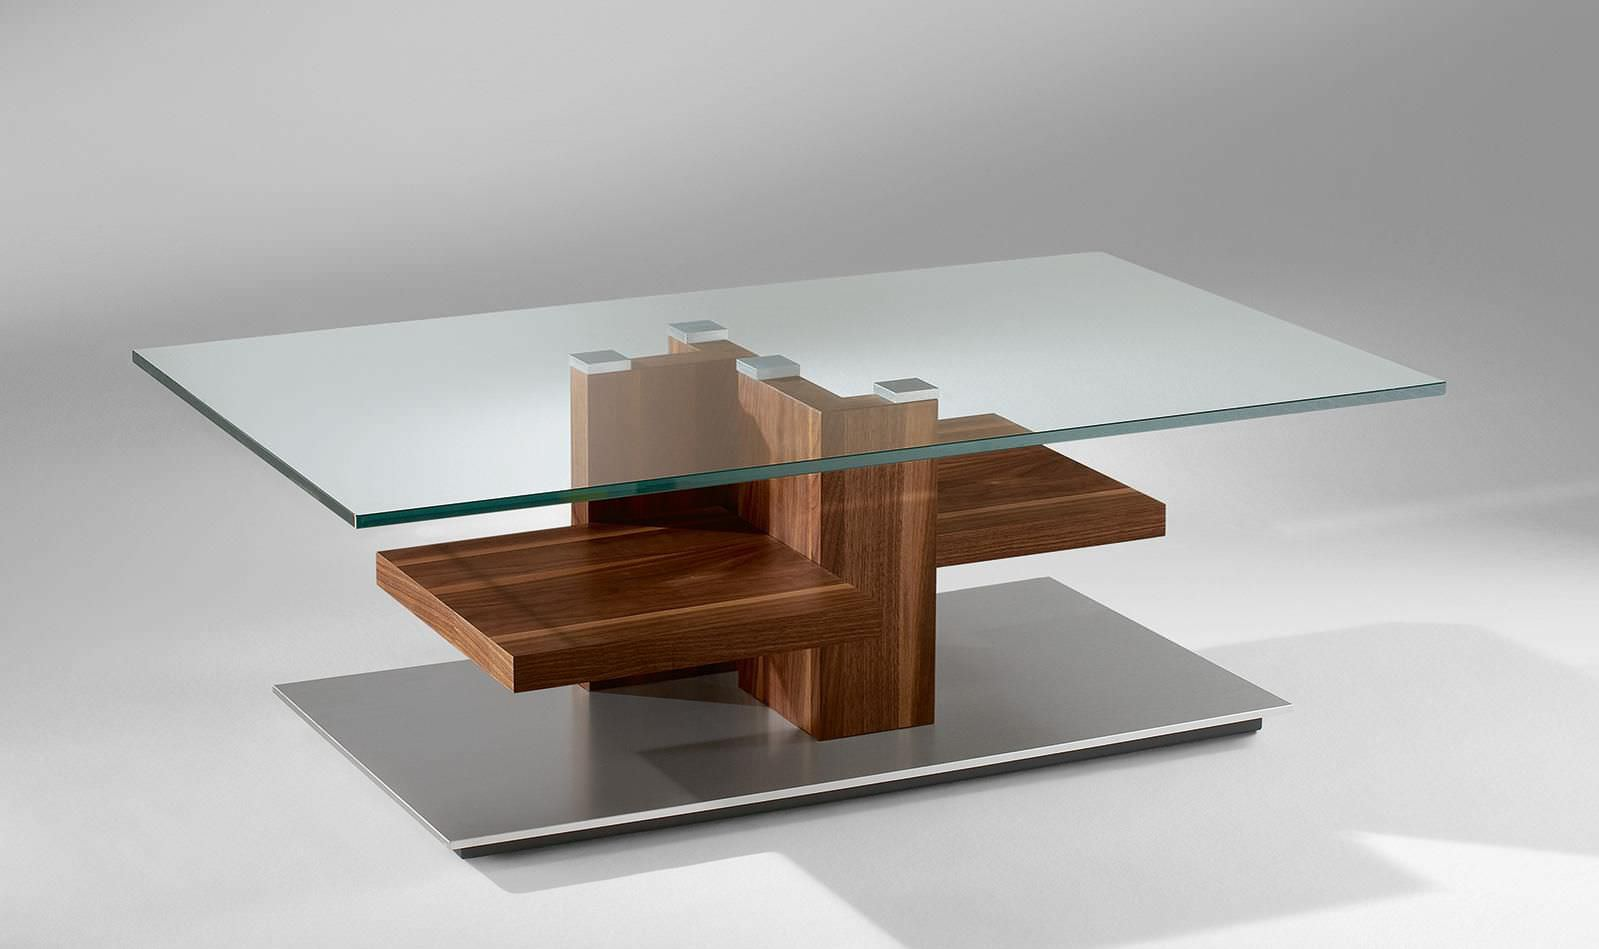 Coffee Table Wood And Glass Twin Coffee Table Stands Elegantly On Reclaimed Wood Base Contemporary 4424 Alfons Venjakob Gmbh (Image 8 of 10)